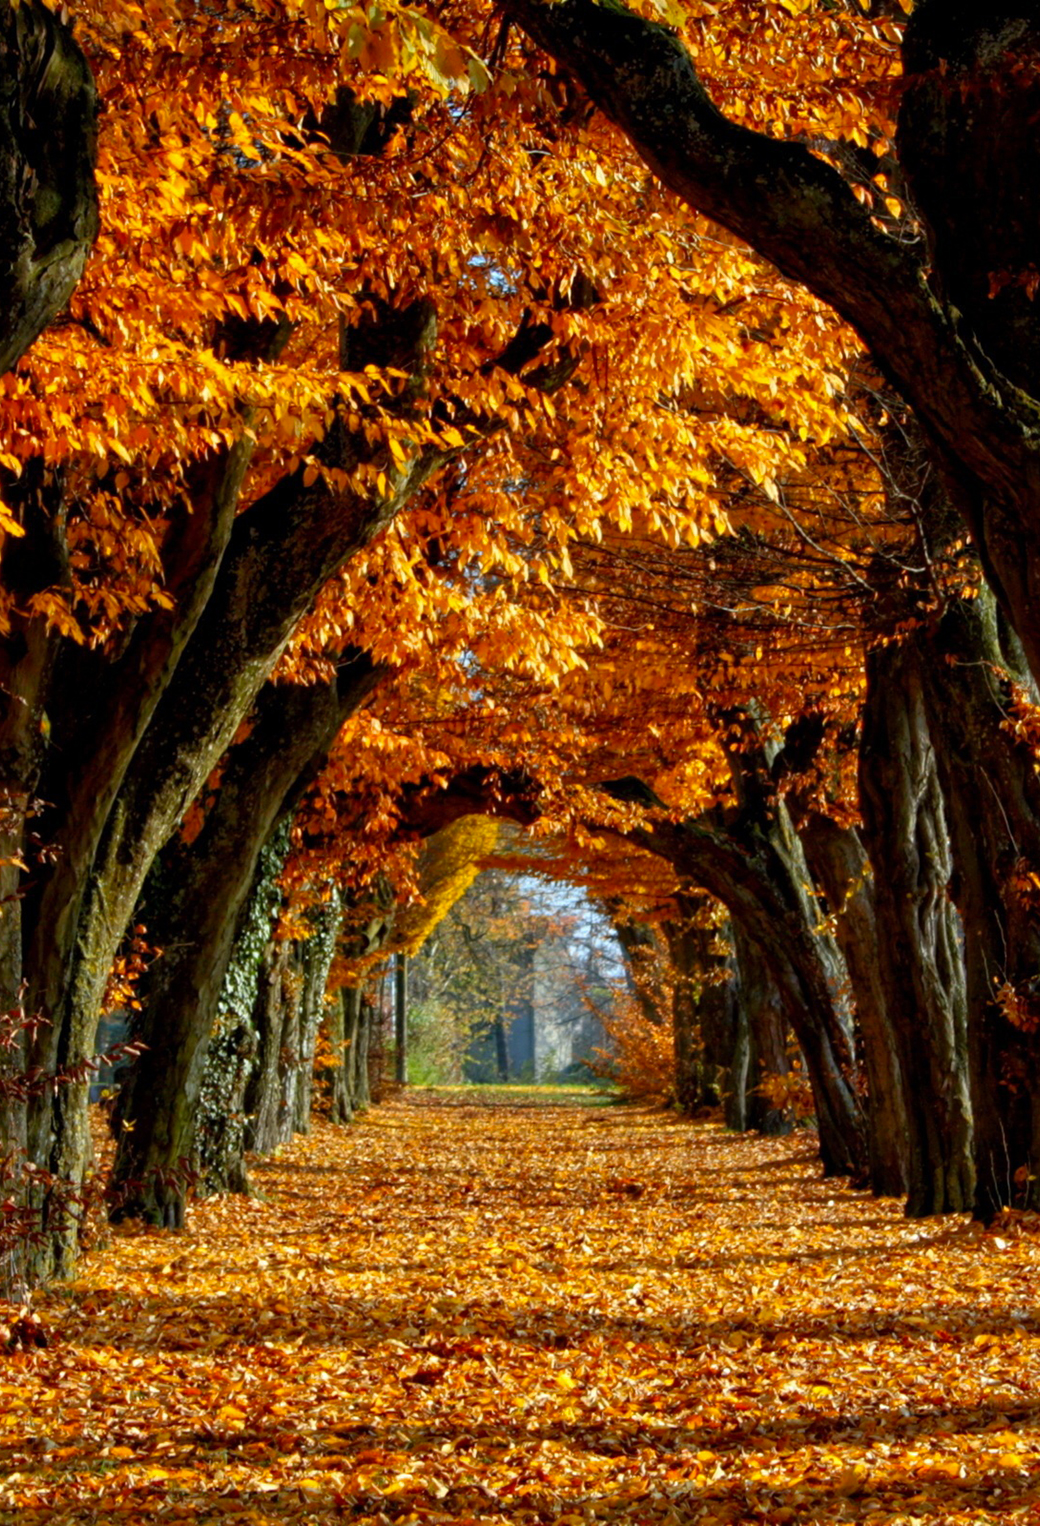 Autumn Autumn Wallpaper For Iphone 11 Pro Max X 8 7 6 Free Download On 3wallpapers